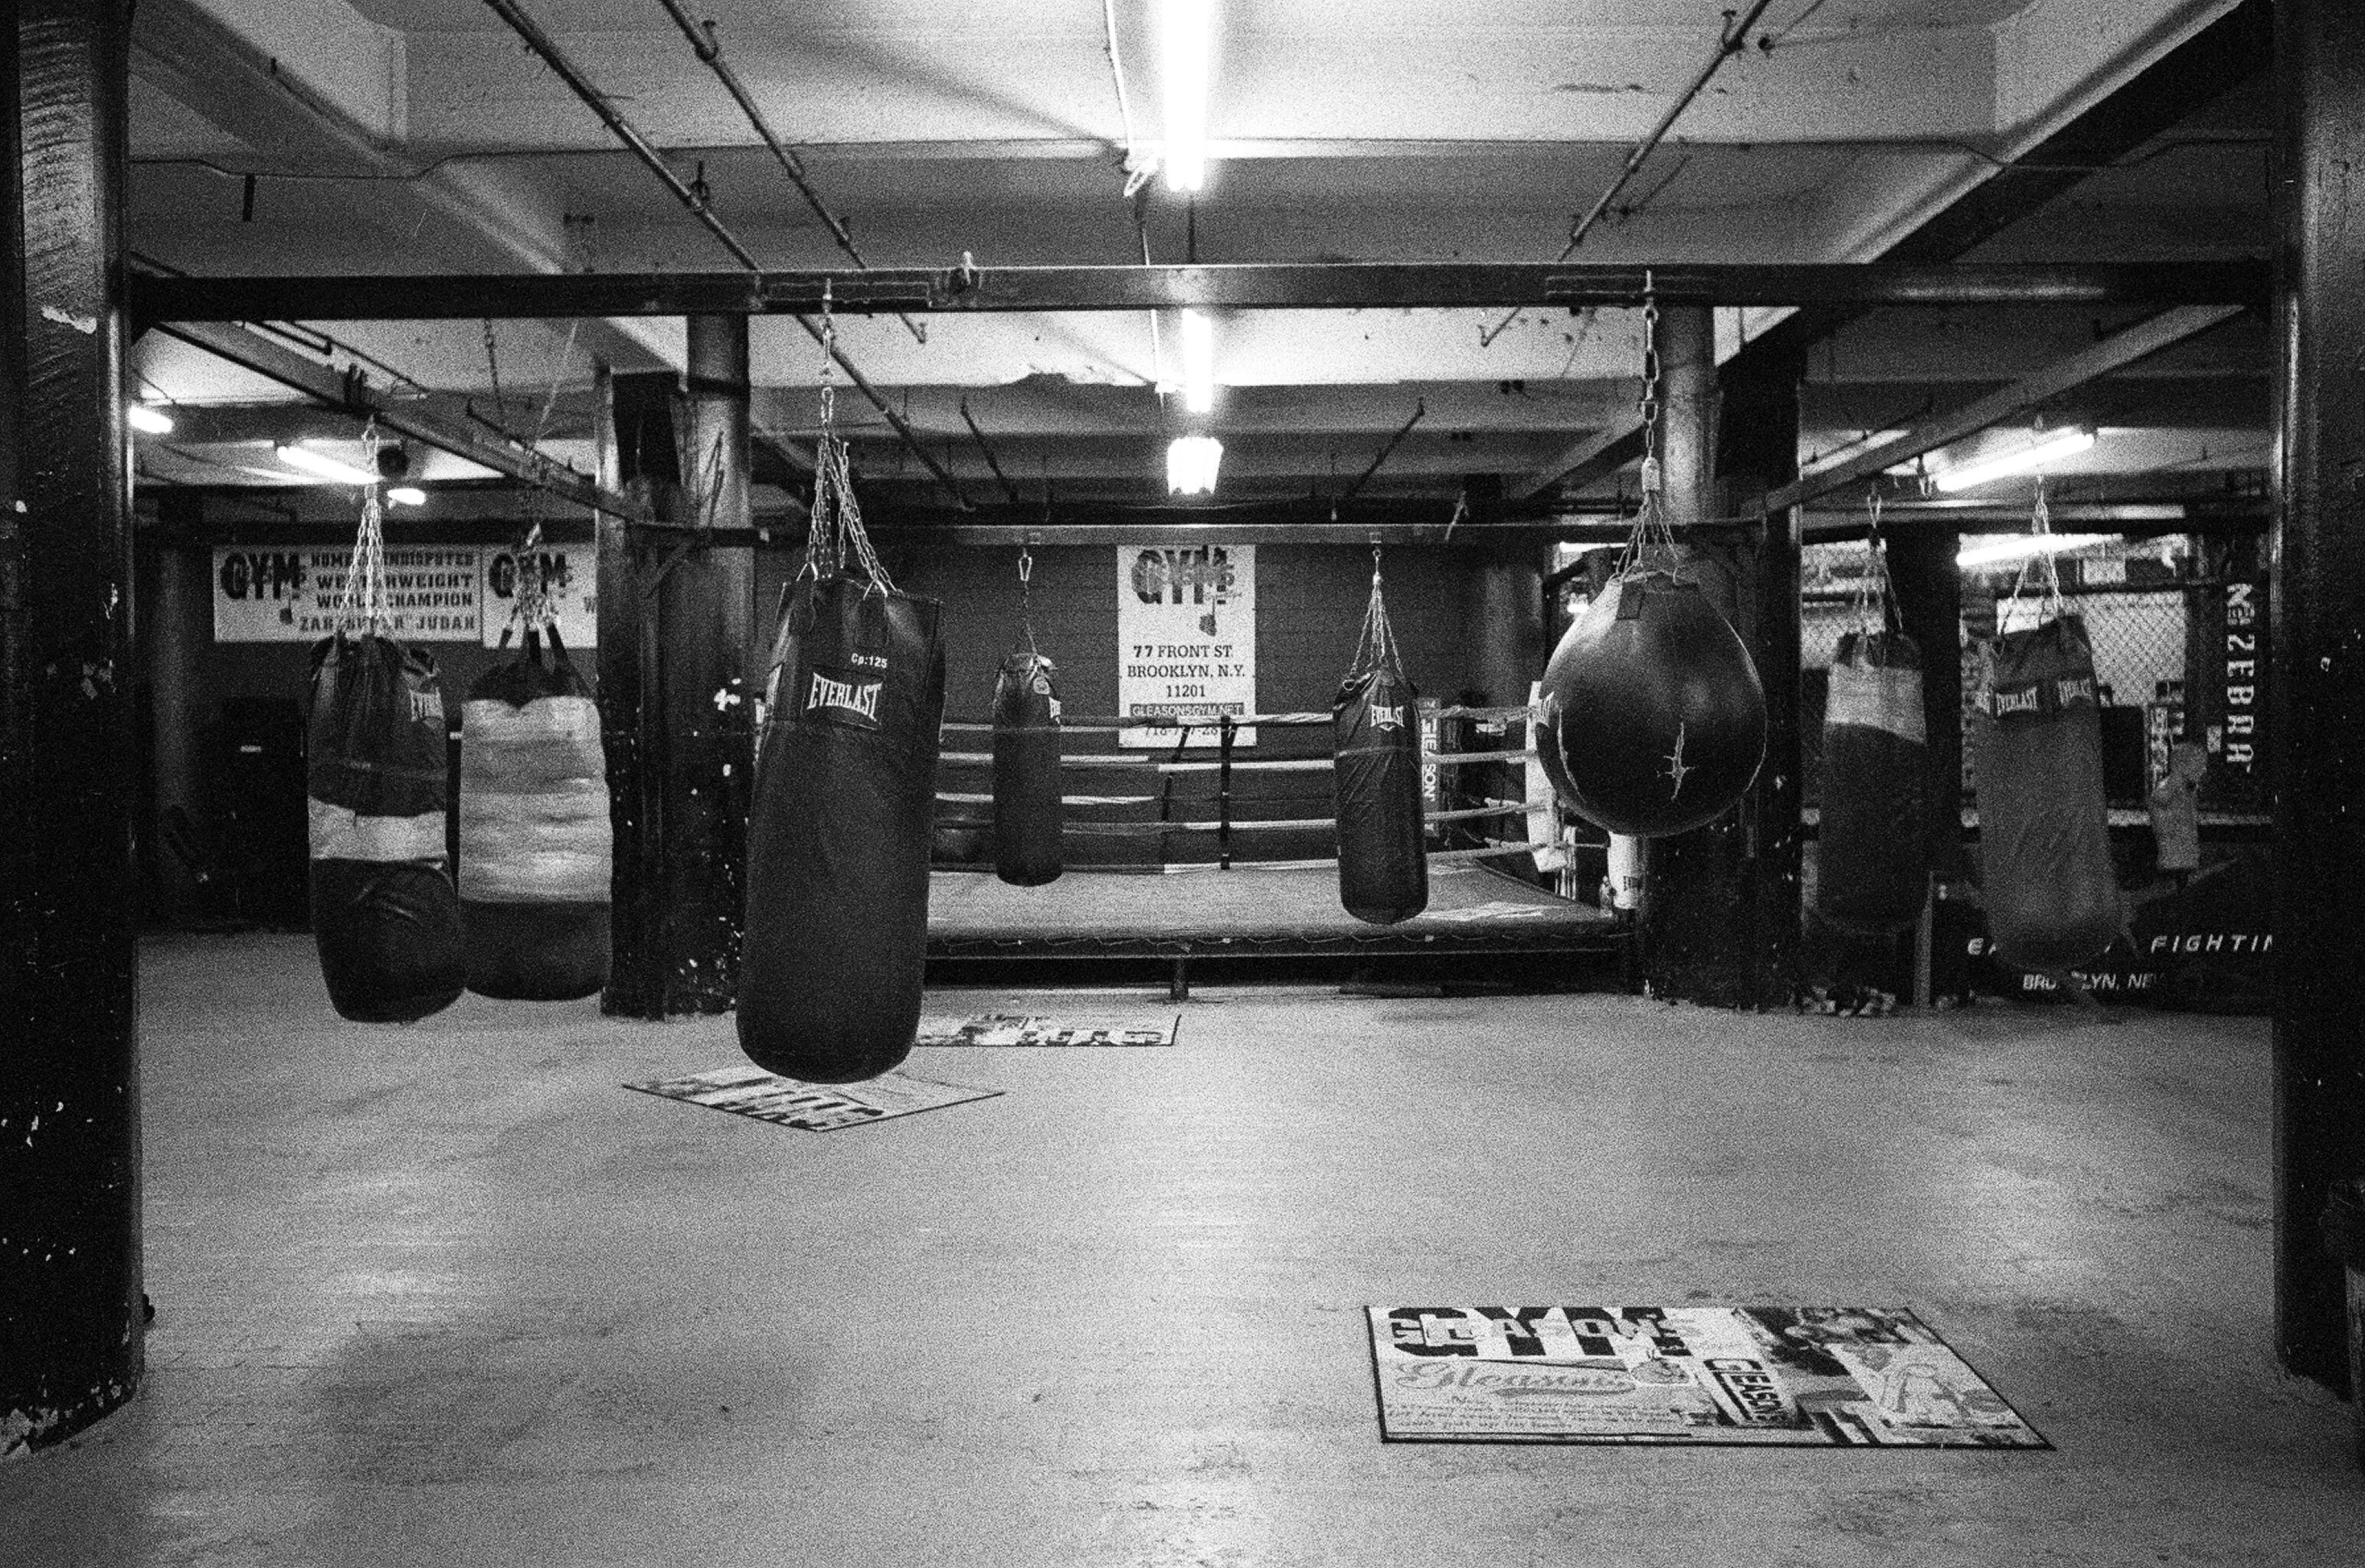 Boxing gyms in Sydney are famous for career building  Those